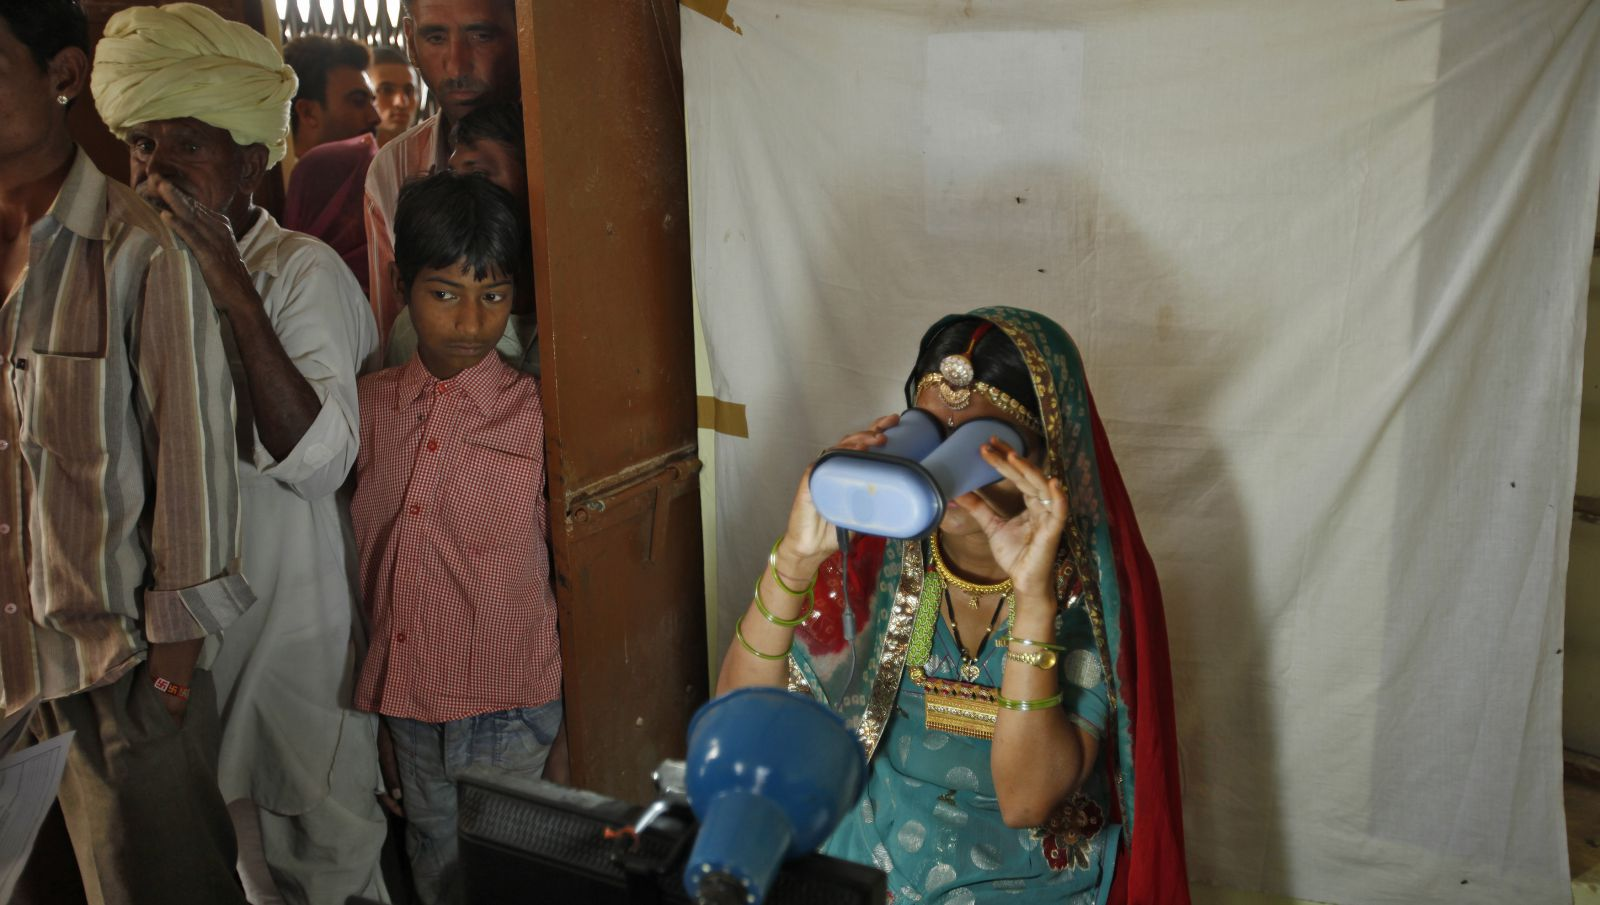 A villager goes through the process of eye scanning for Unique Identification (UID) database system at an enrolment centre at Merta district in the desert Indian state of Rajasthan February 21, 2013.In a more ambitious version of programmes that have slashed poverty in Brazil and Mexico, the Indian government has begun to use the UID database, known as Aadhaar, to make direct cash transfers to the poor, in an attempt to cut out frauds who siphon billions of dollars from welfare schemes. Picture taken February 21, 2013